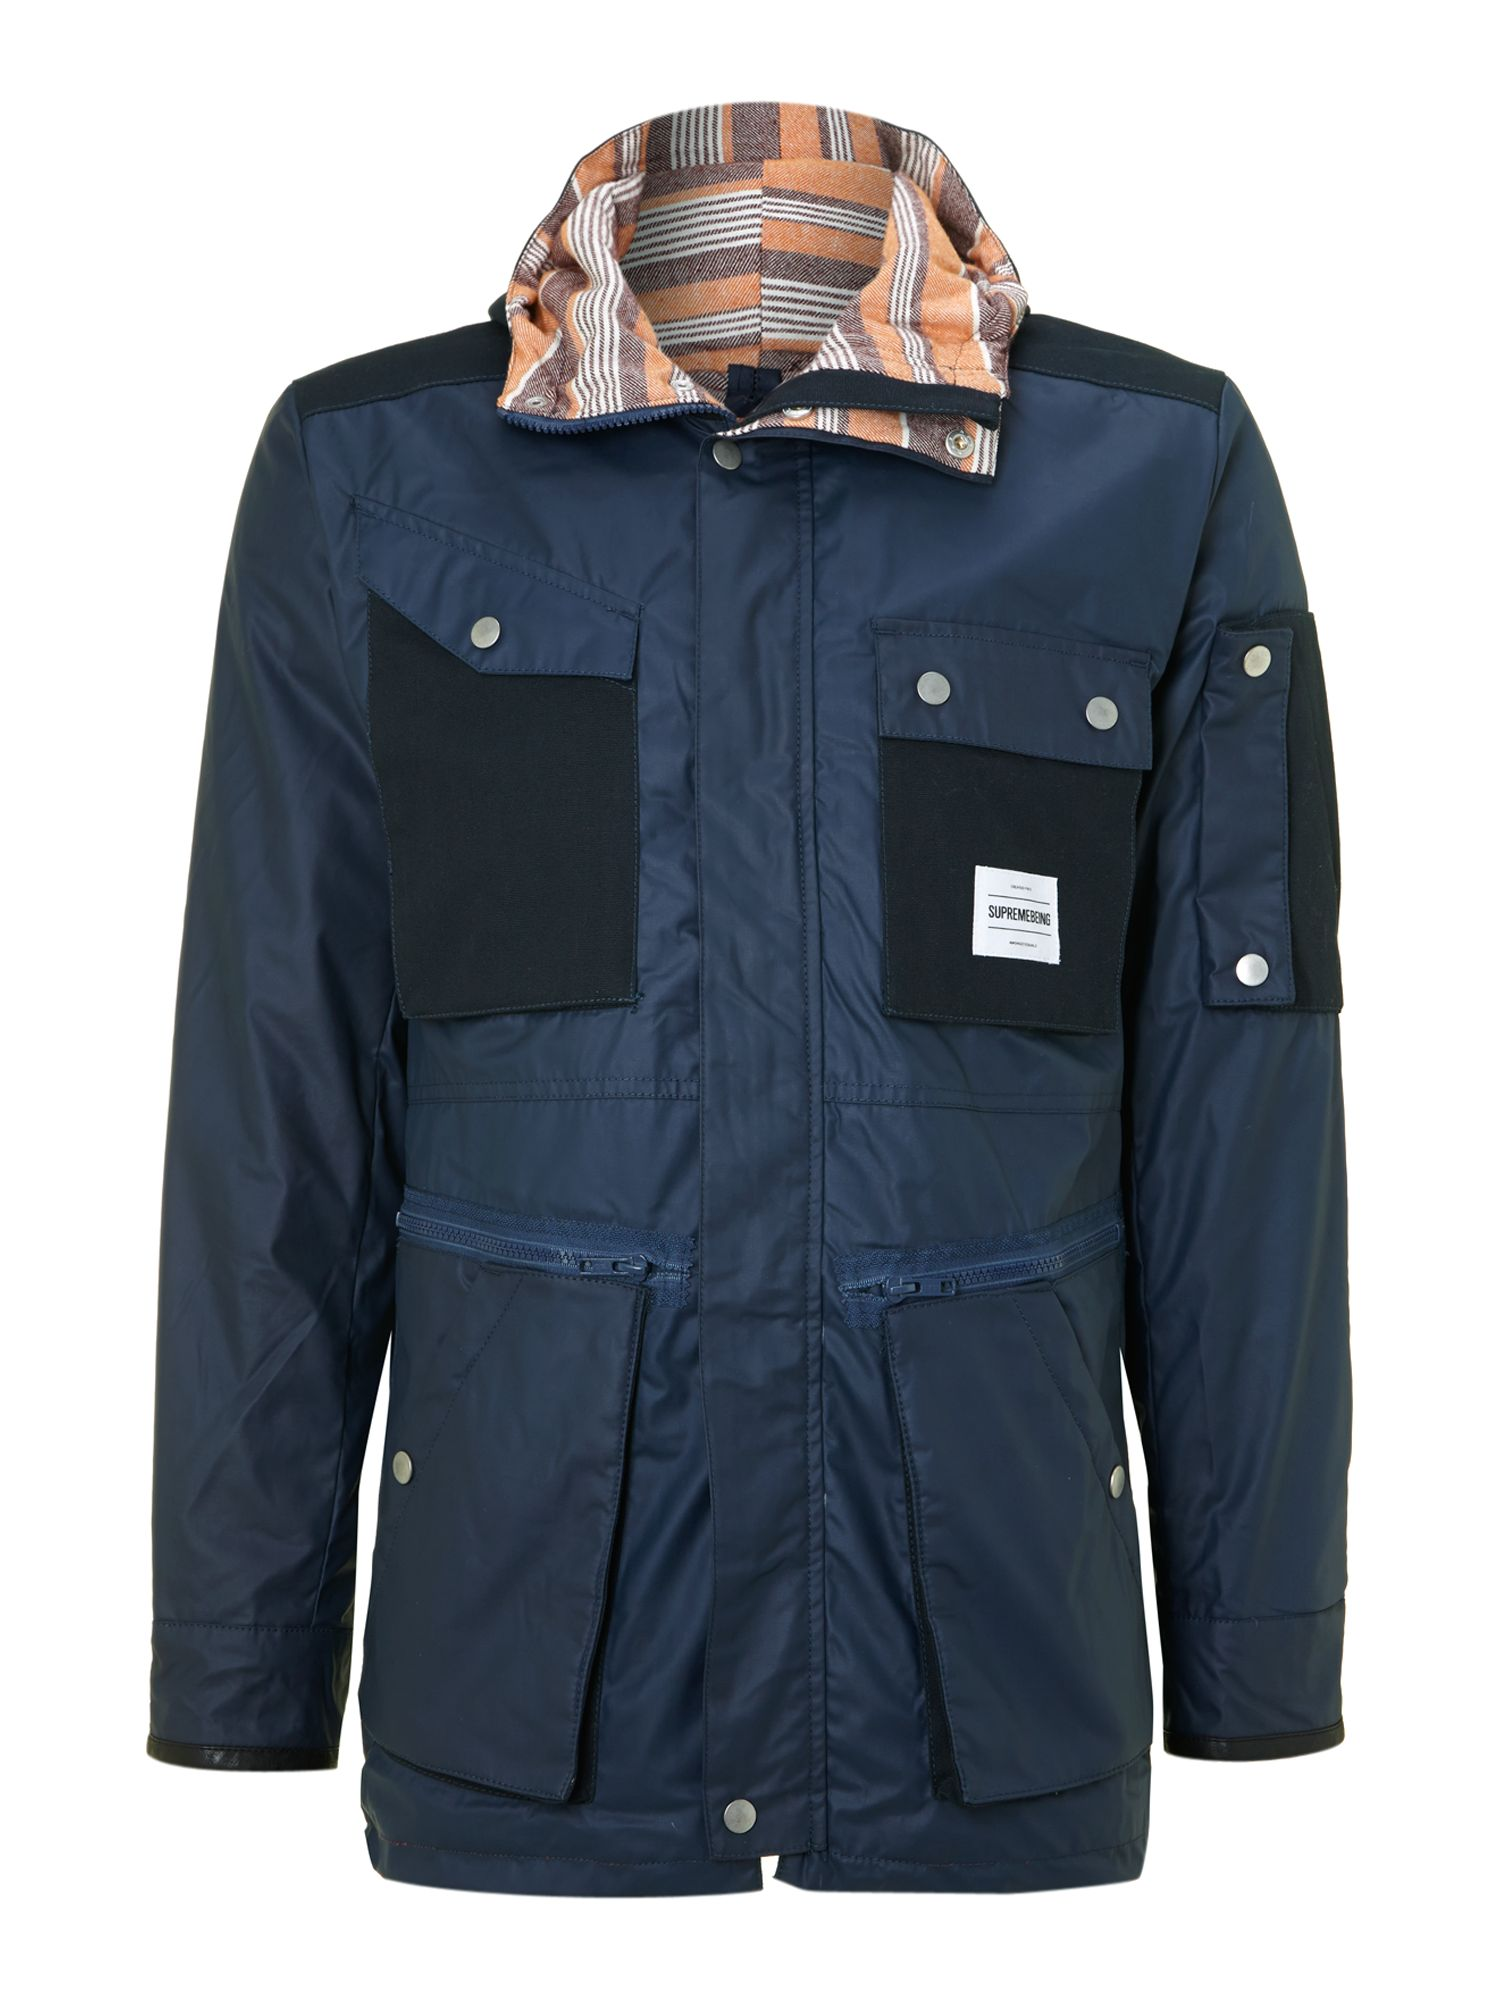 Portage pocketed coat